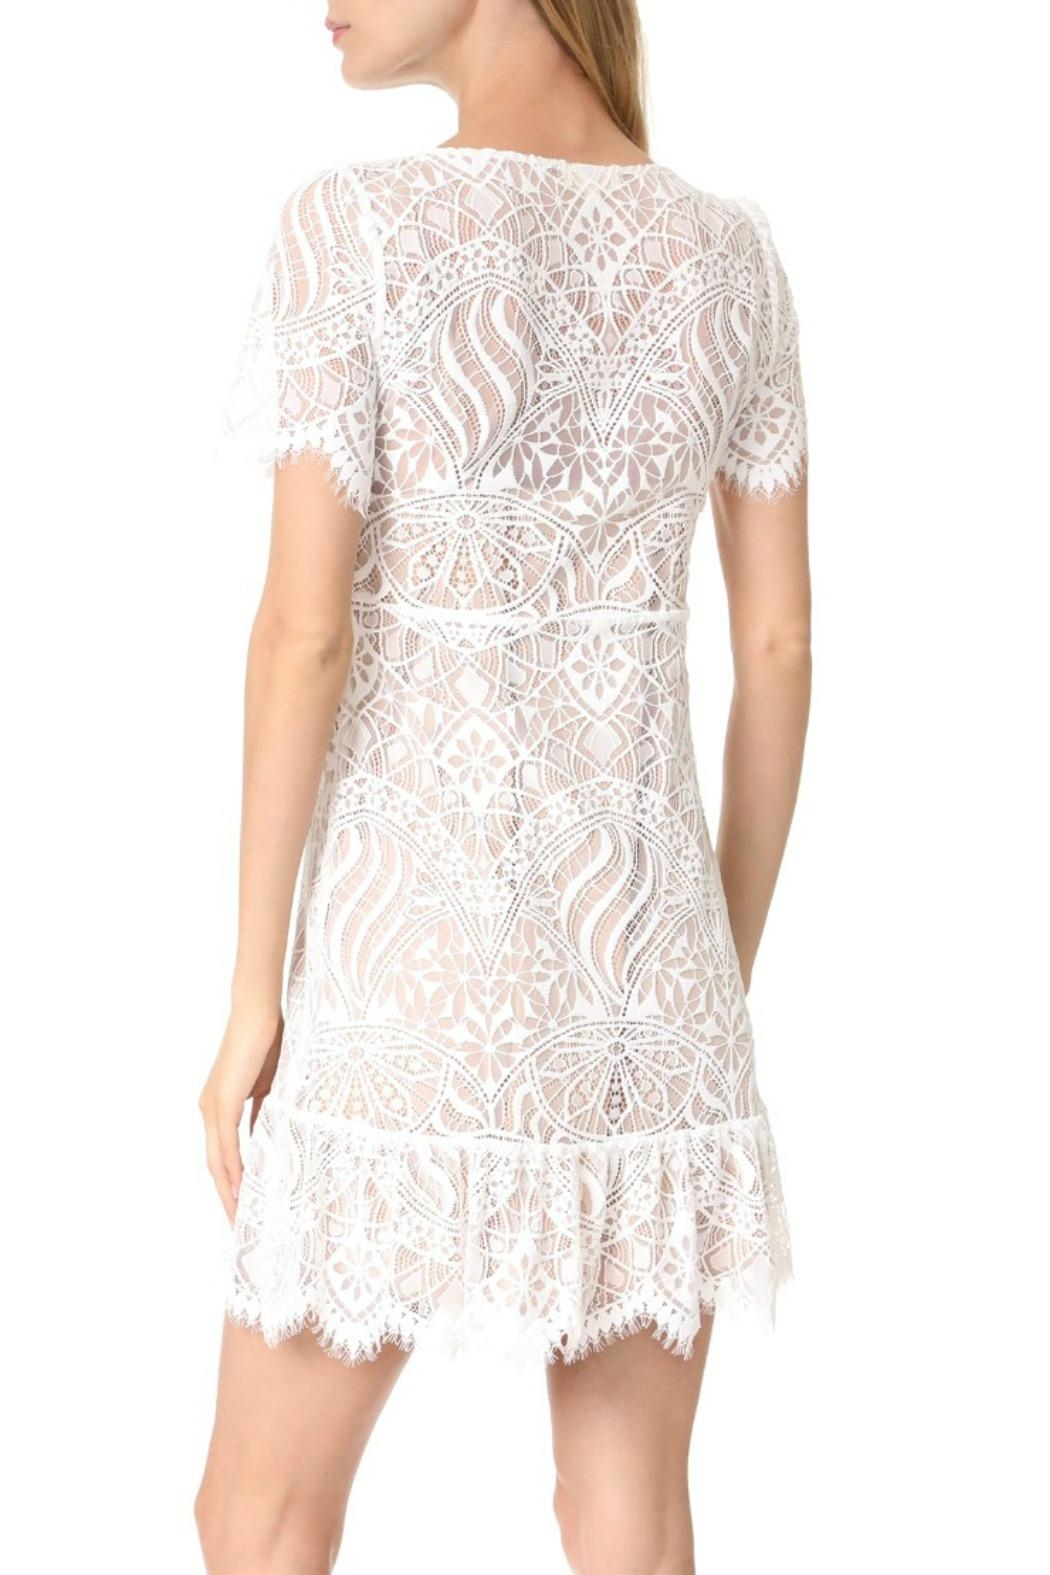 FOR LOVE & LEMONS Lily Lace Dress - Front Full Image